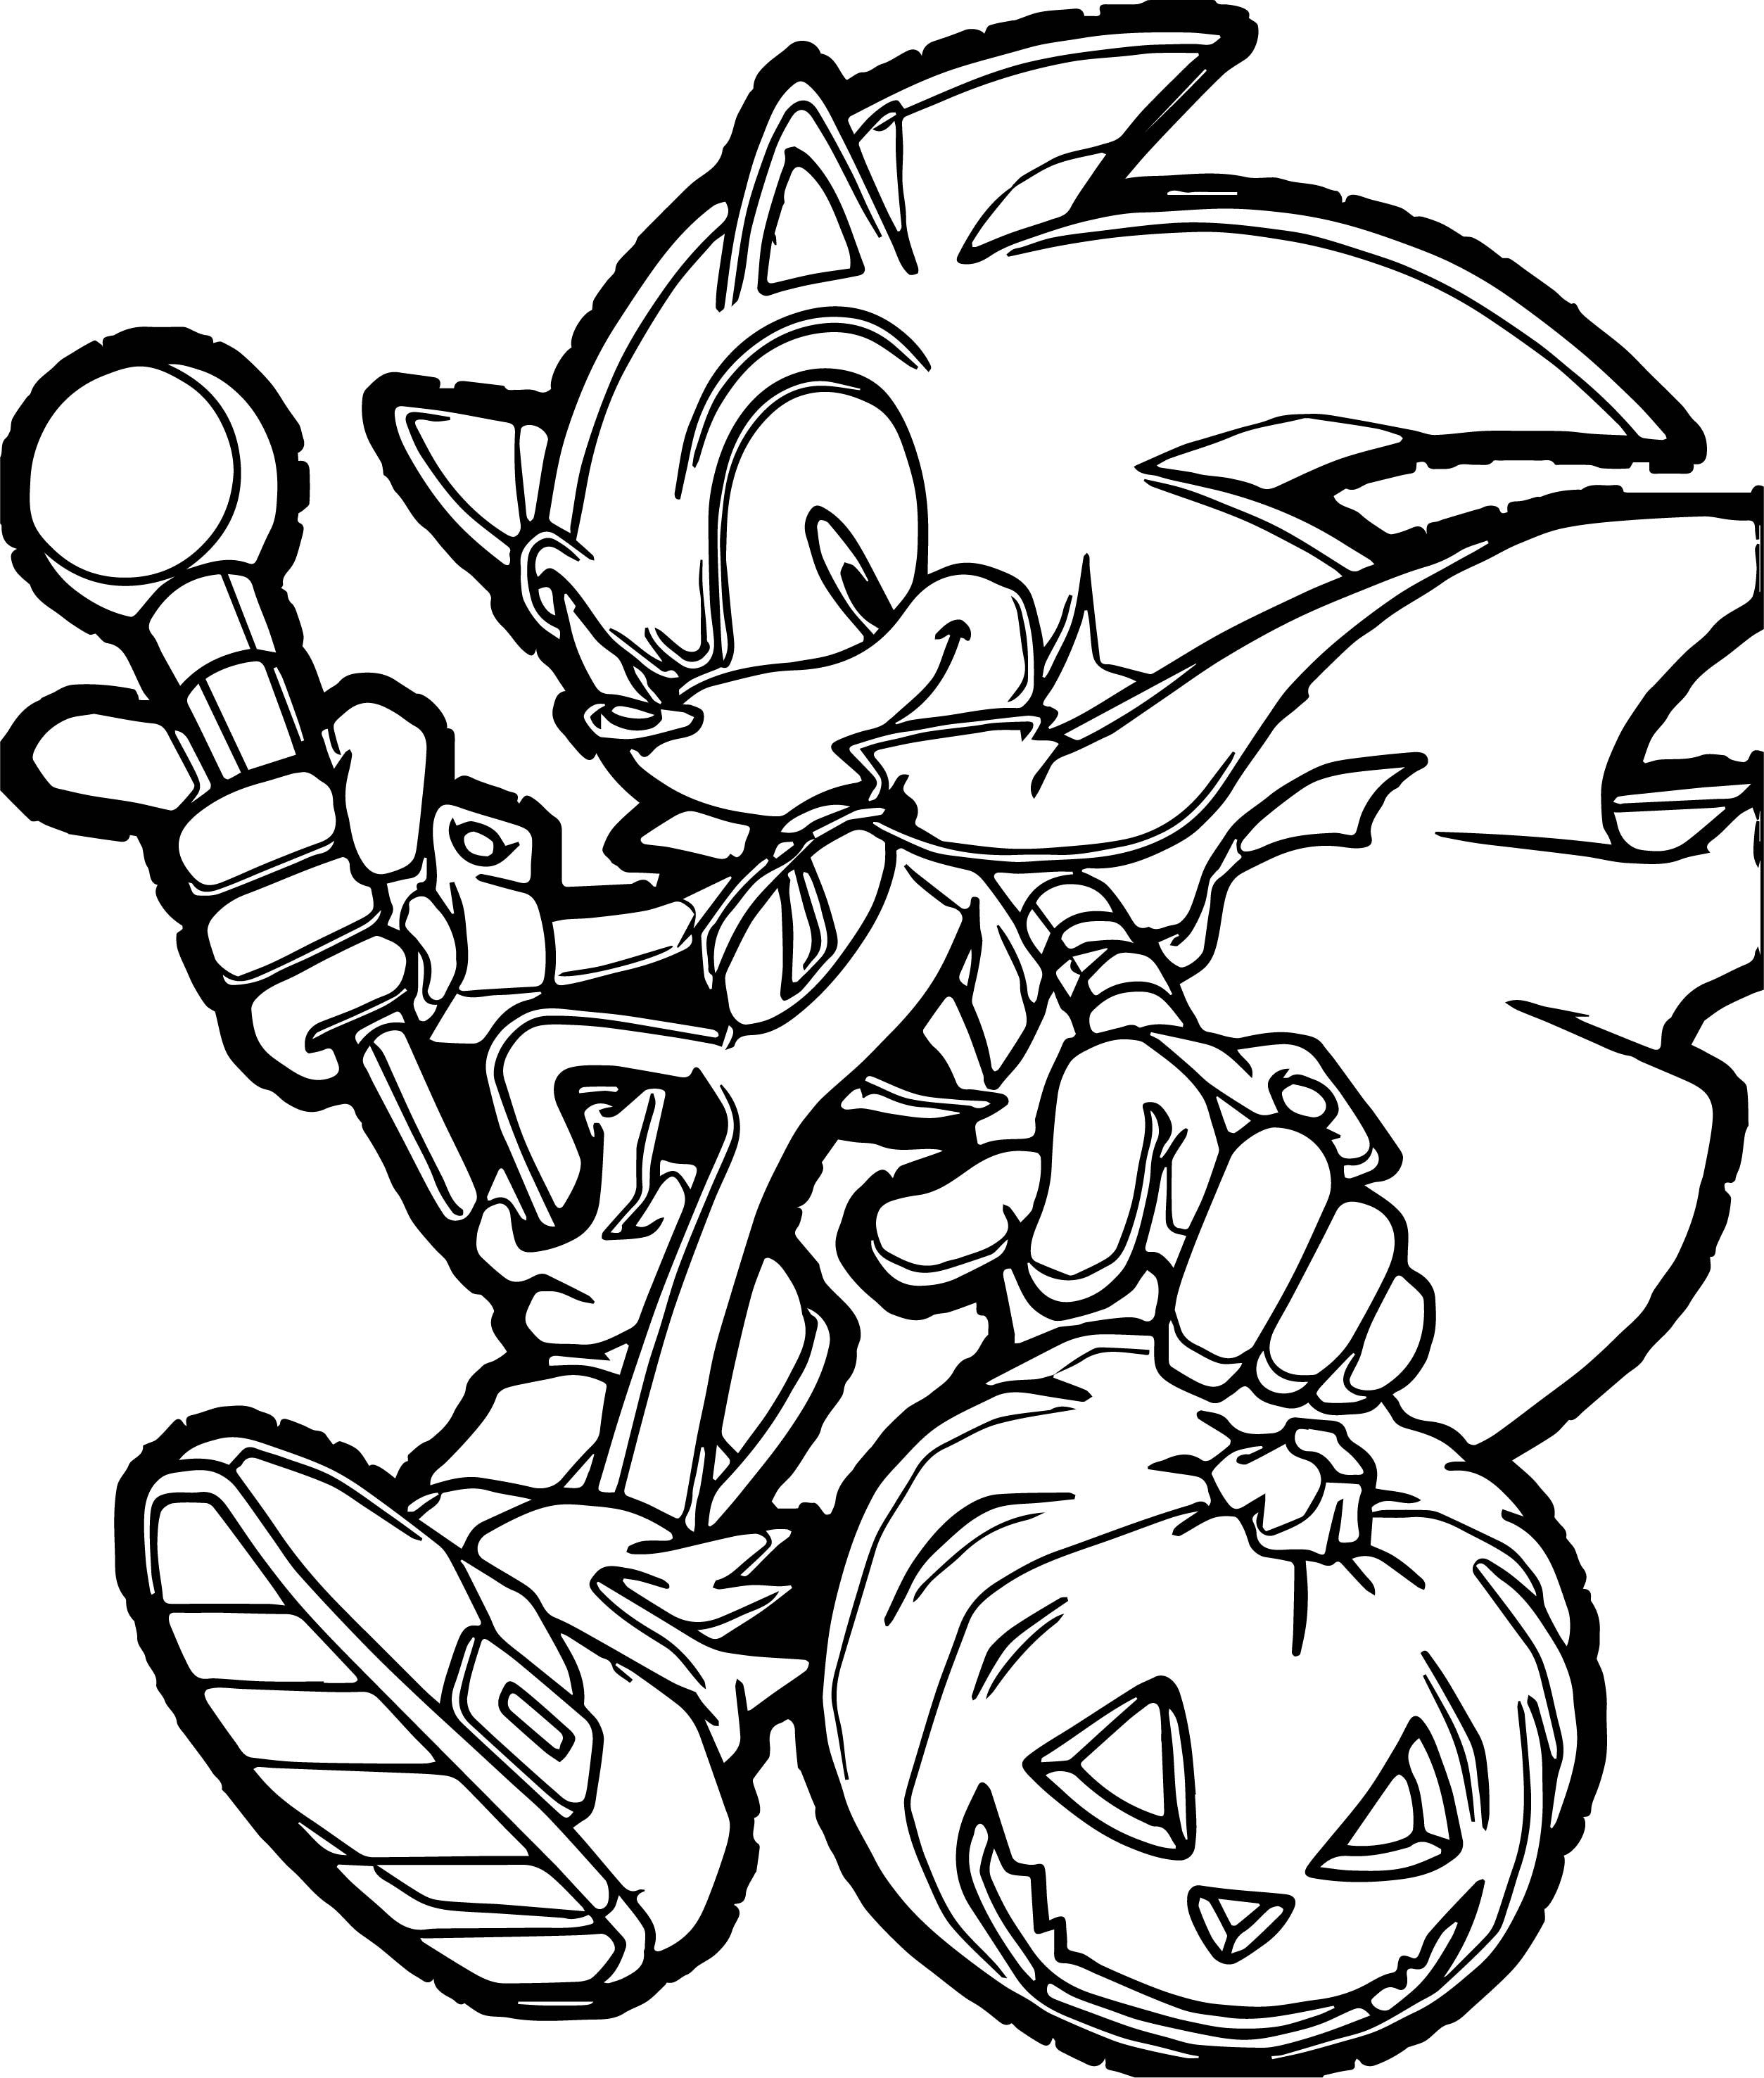 Sonic The Hedgehog Halloween Pumpkin Coloring Page | wecoloringpage ...